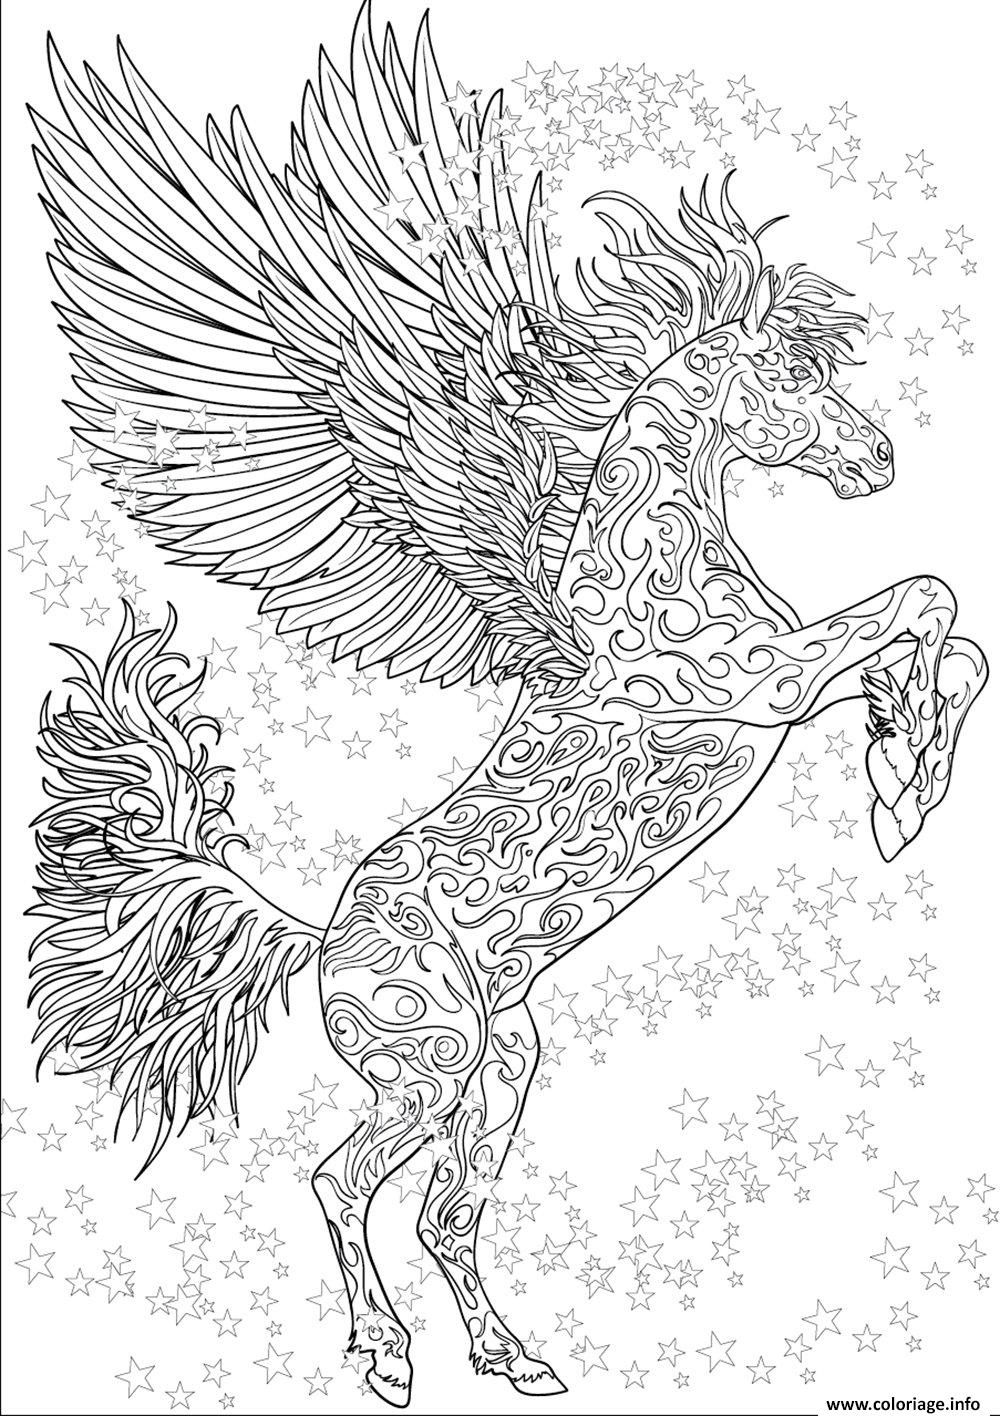 Coloriage Cheval Adulte Licorne Ailes Antistress Etoiles Dessin A